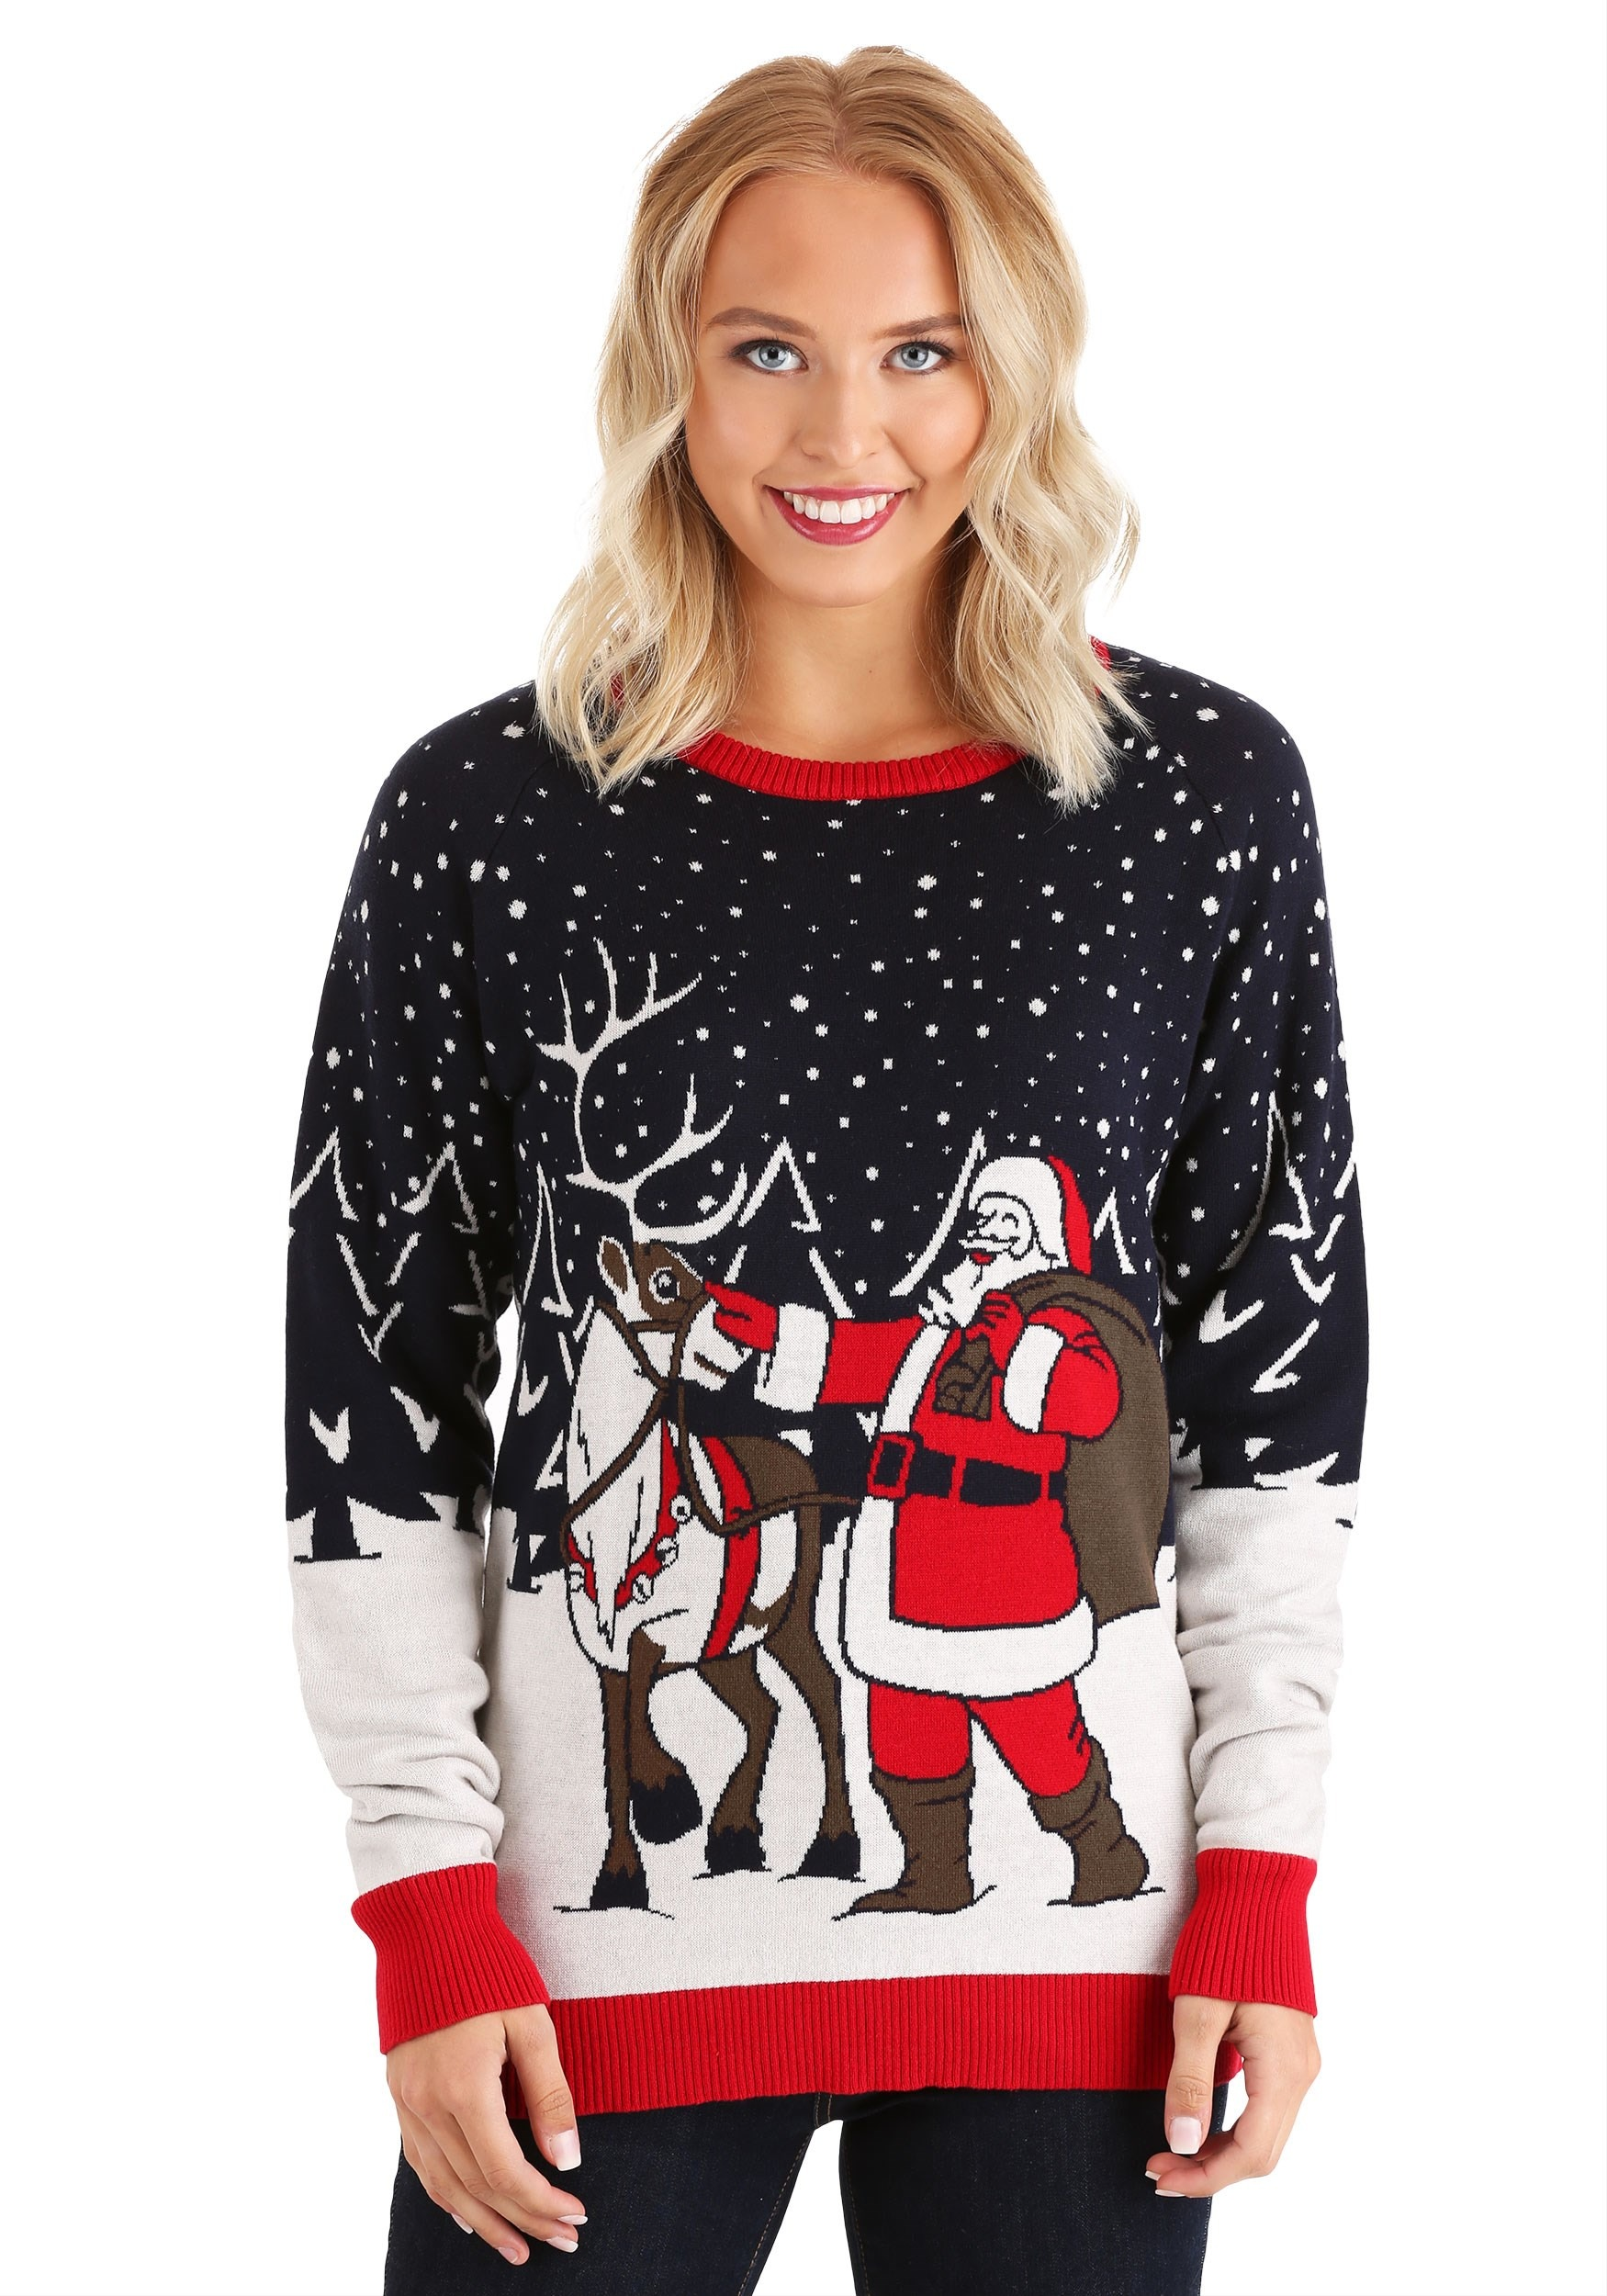 Vintage Santa & Reindeer Ugly Christmas Sweater for Adults